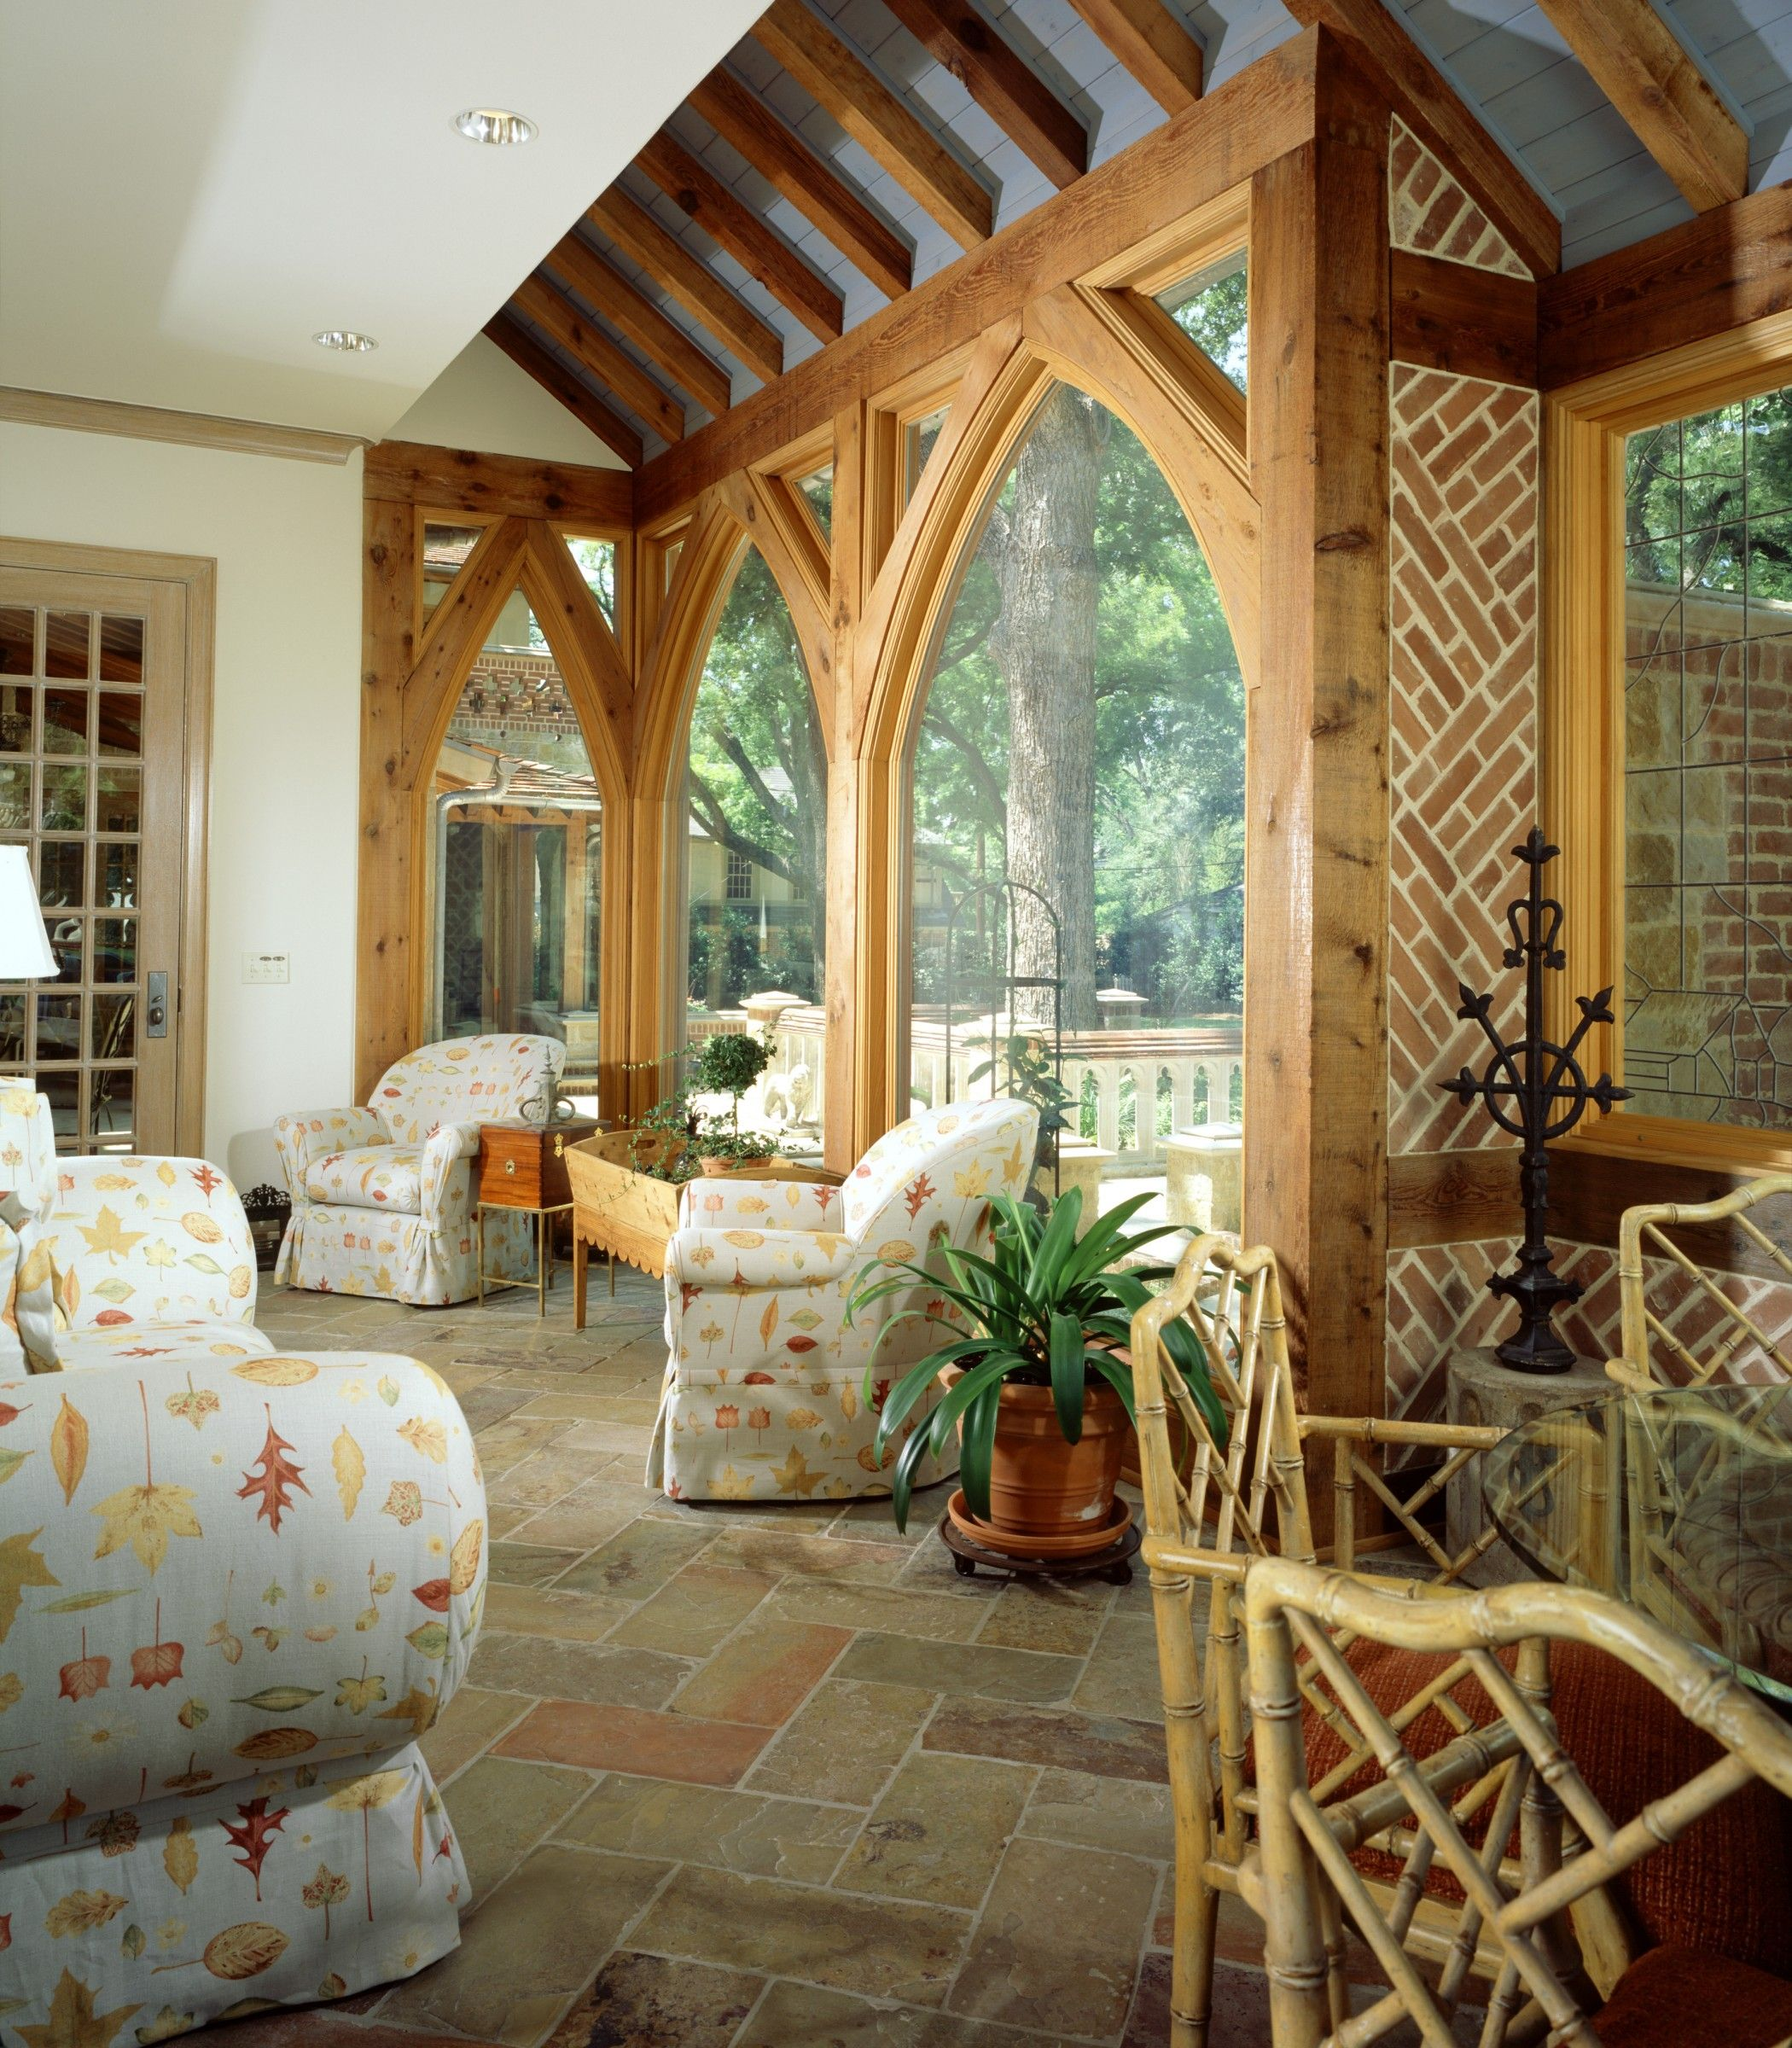 Landscape Lighting Highland Park: Outdoor Patio, Deck, Dining And Seating Area With Arched